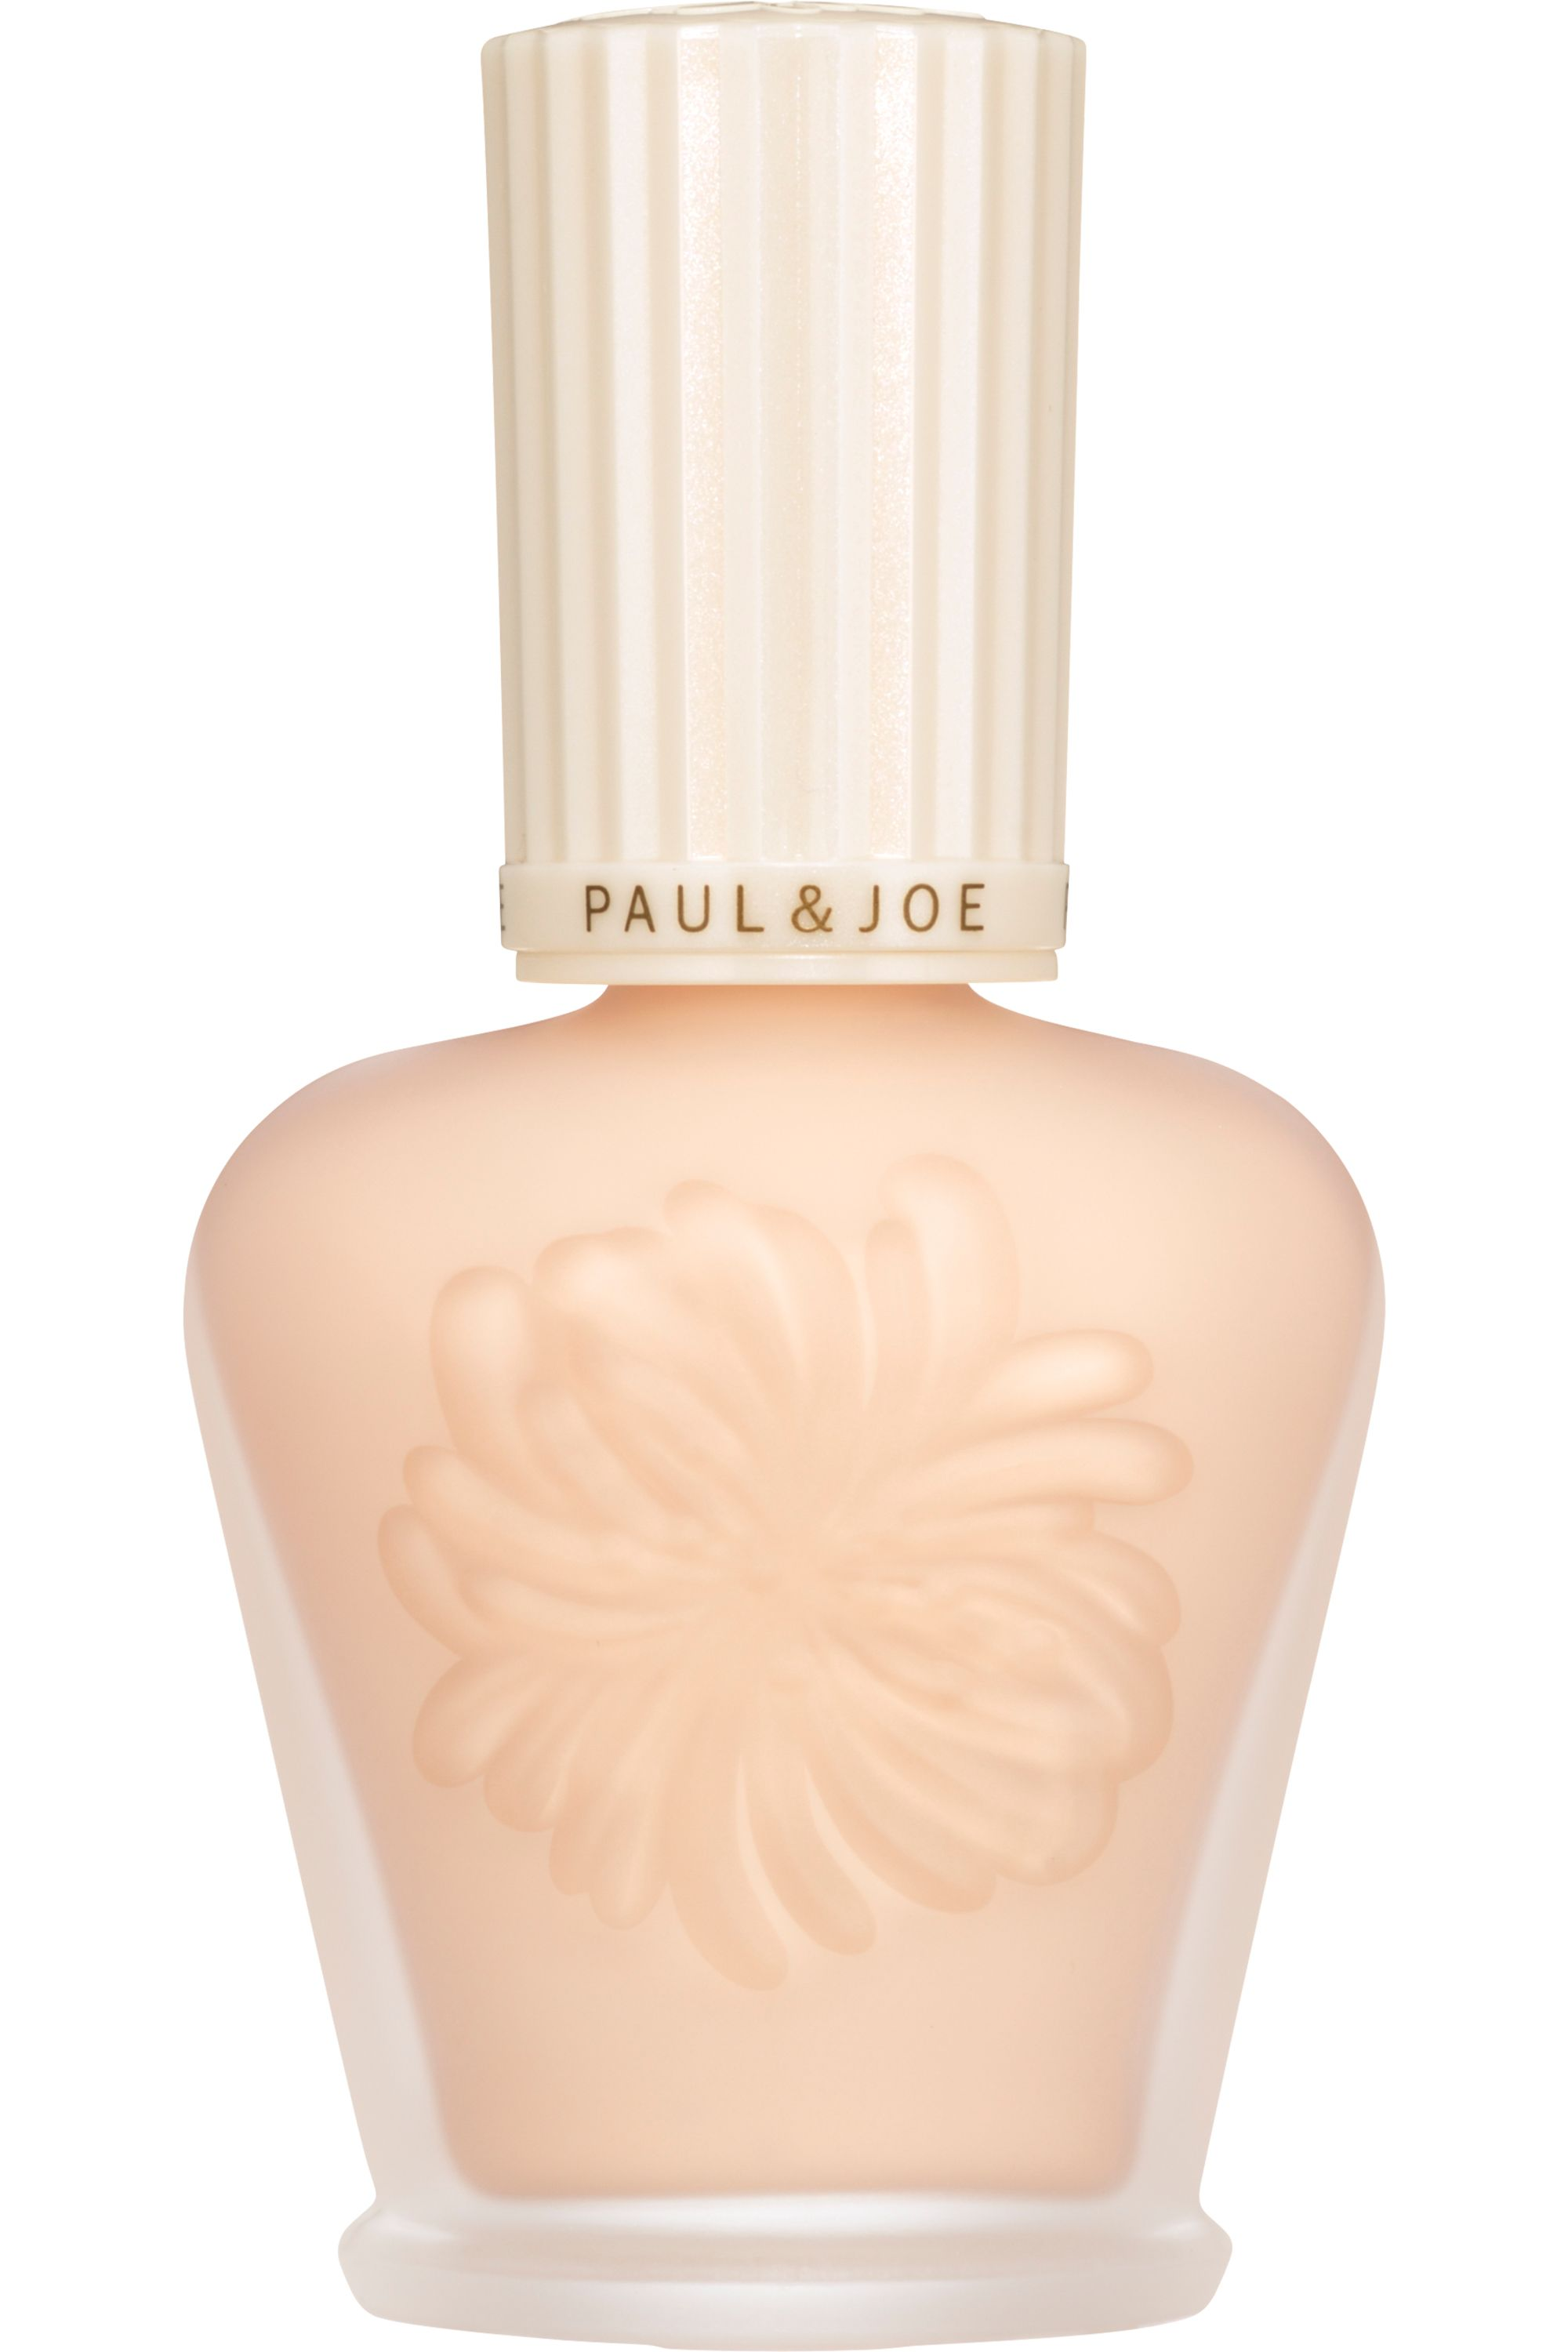 Blissim : Paul & Joe - Base de Maquillage Protectrice S 02 - Base de Maquillage Protectrice S 02